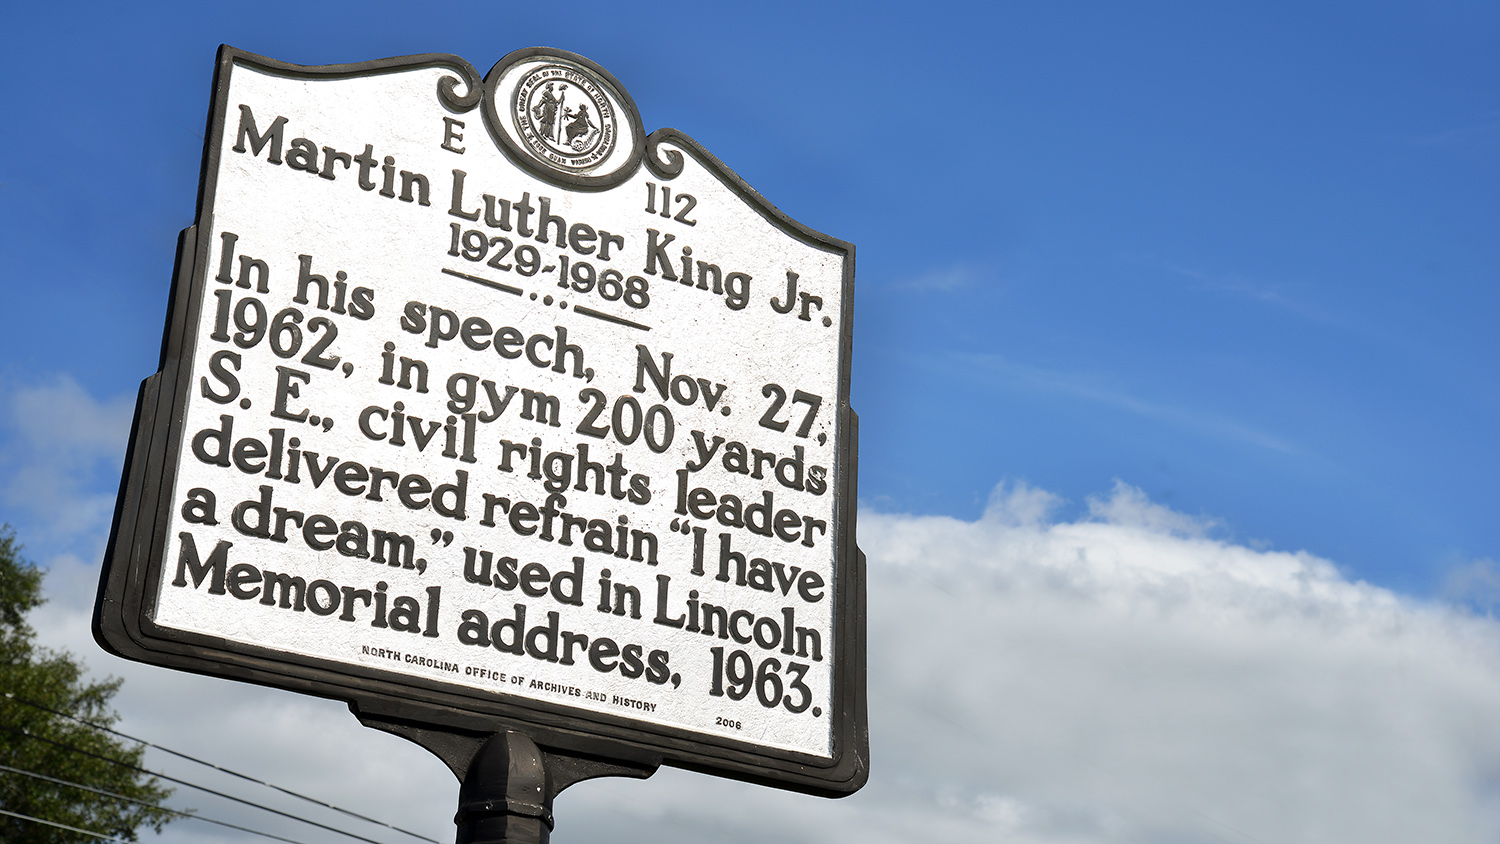 North Carolina historical marker for Dr. Martin Luther King's speech given in Rocky Mount.